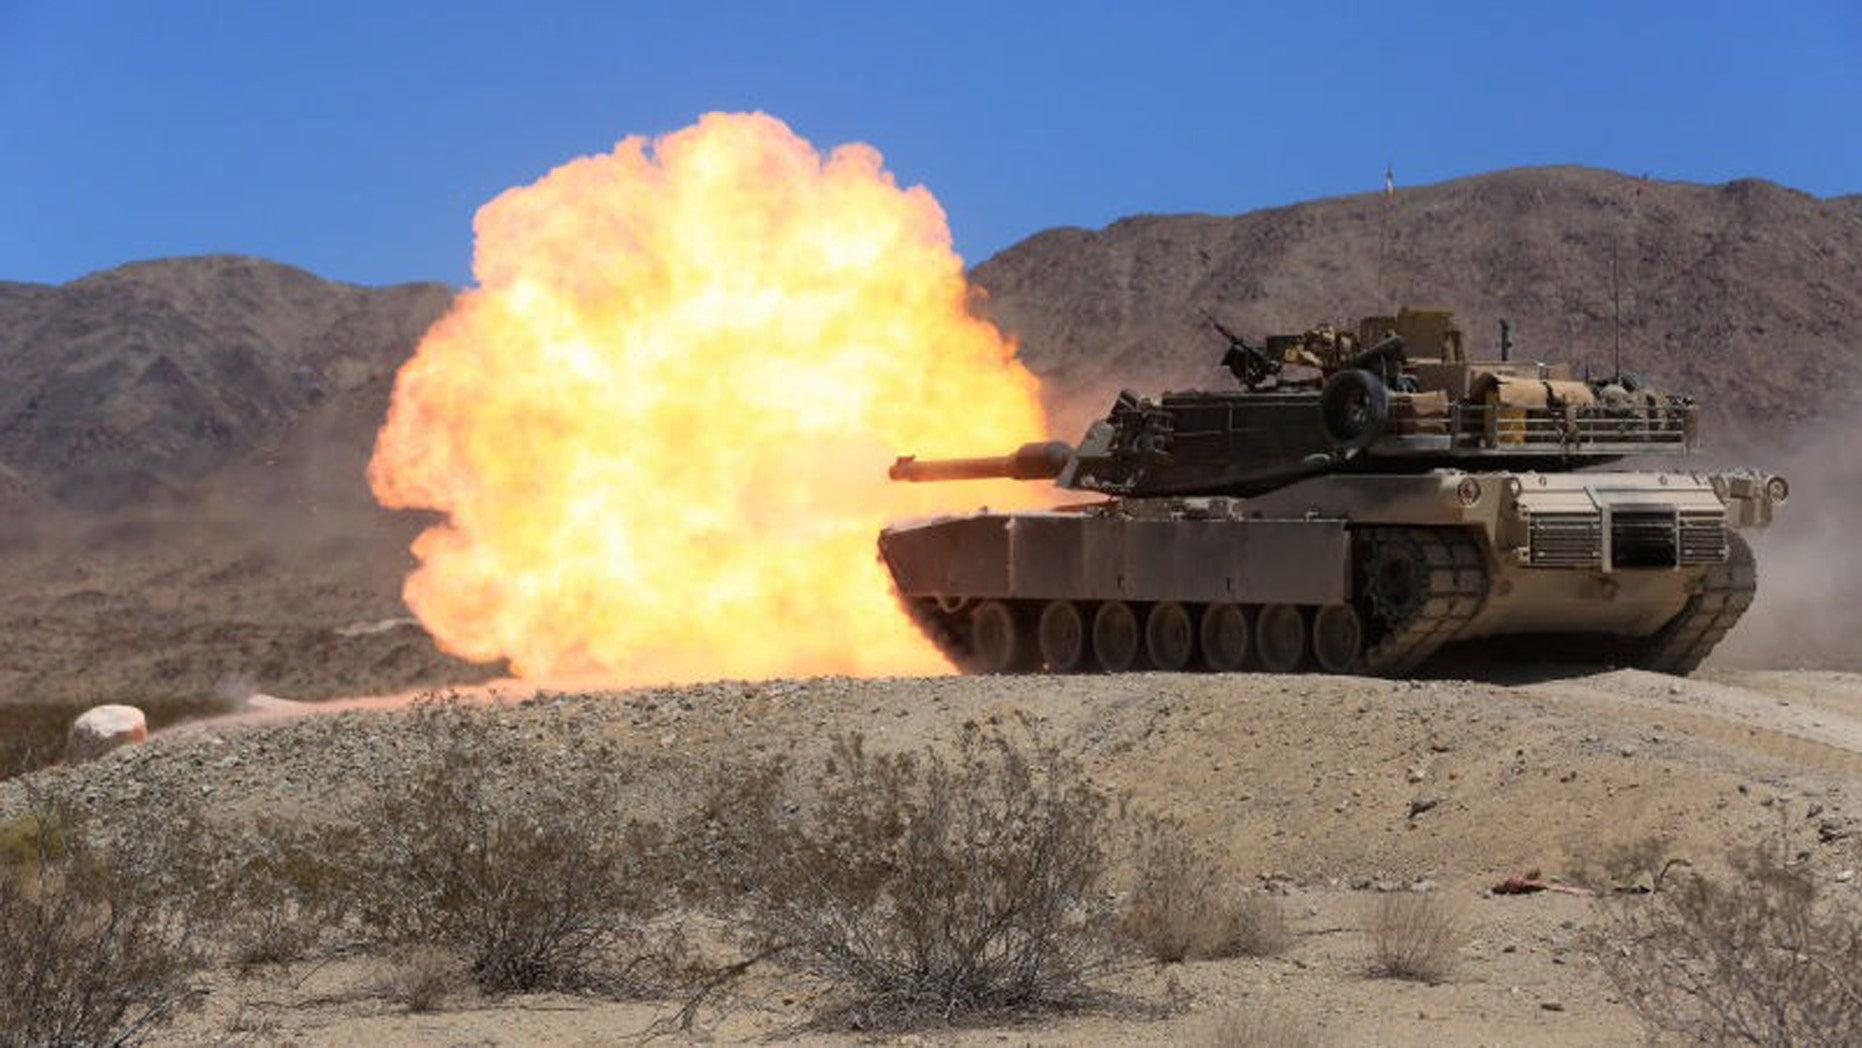 The Army is engineering new Hostile Fire Detection sensors for its fleet of armored combat vehicles (Credit: US Army)